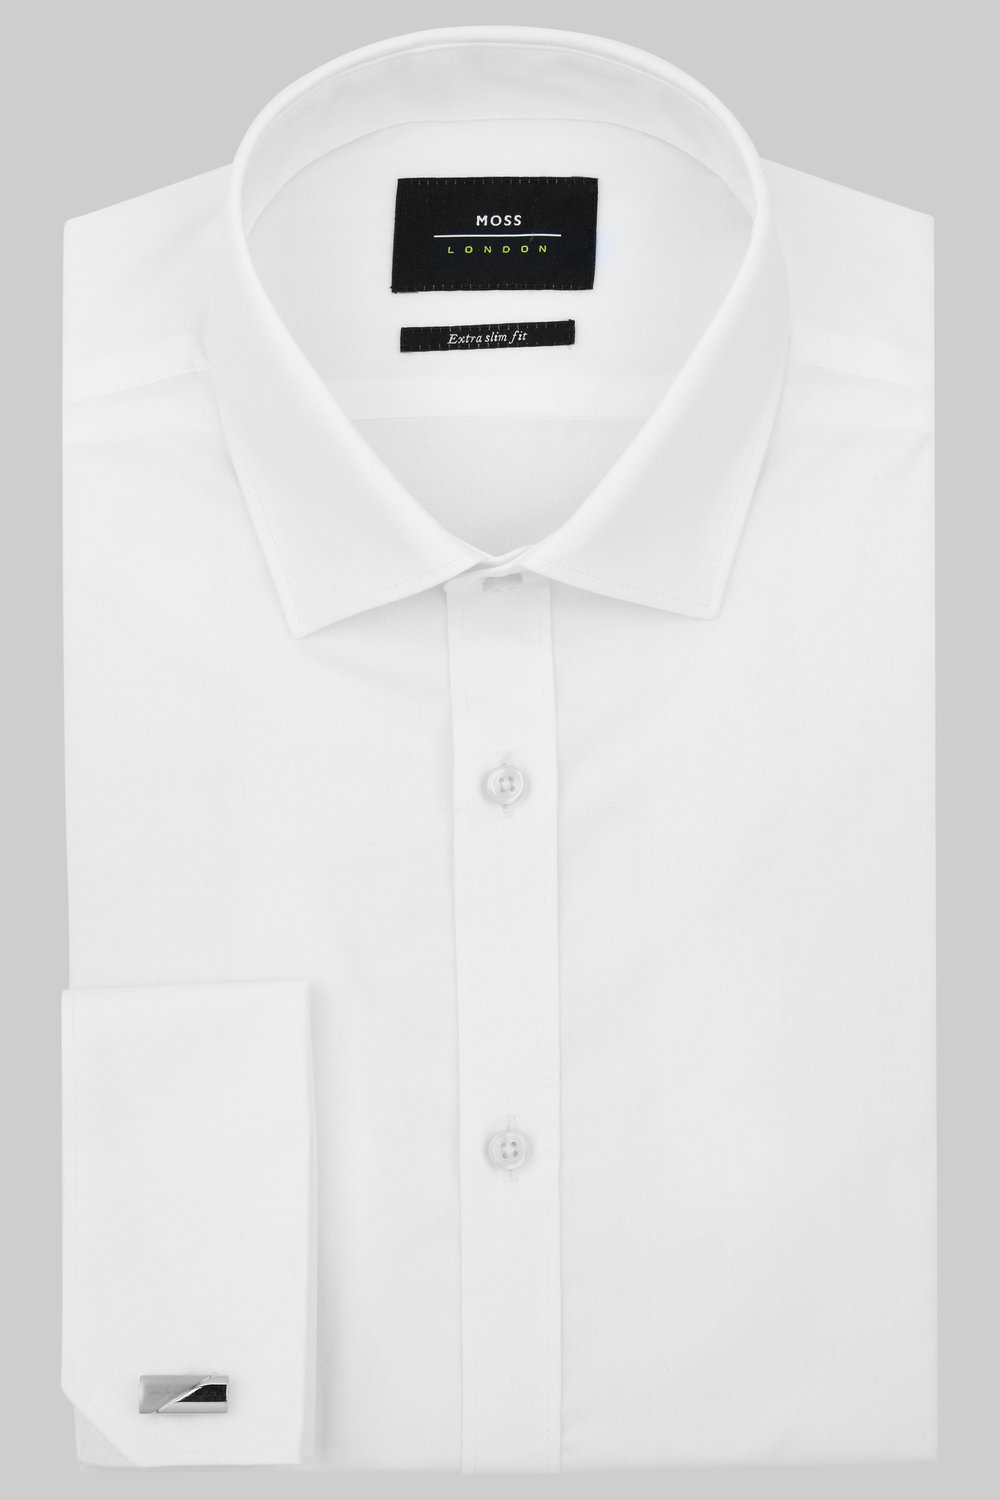 #1 White Dress Shirt  - Fresh and crisp, the white dress shirt can be dressed down or worn at more formal occasions.